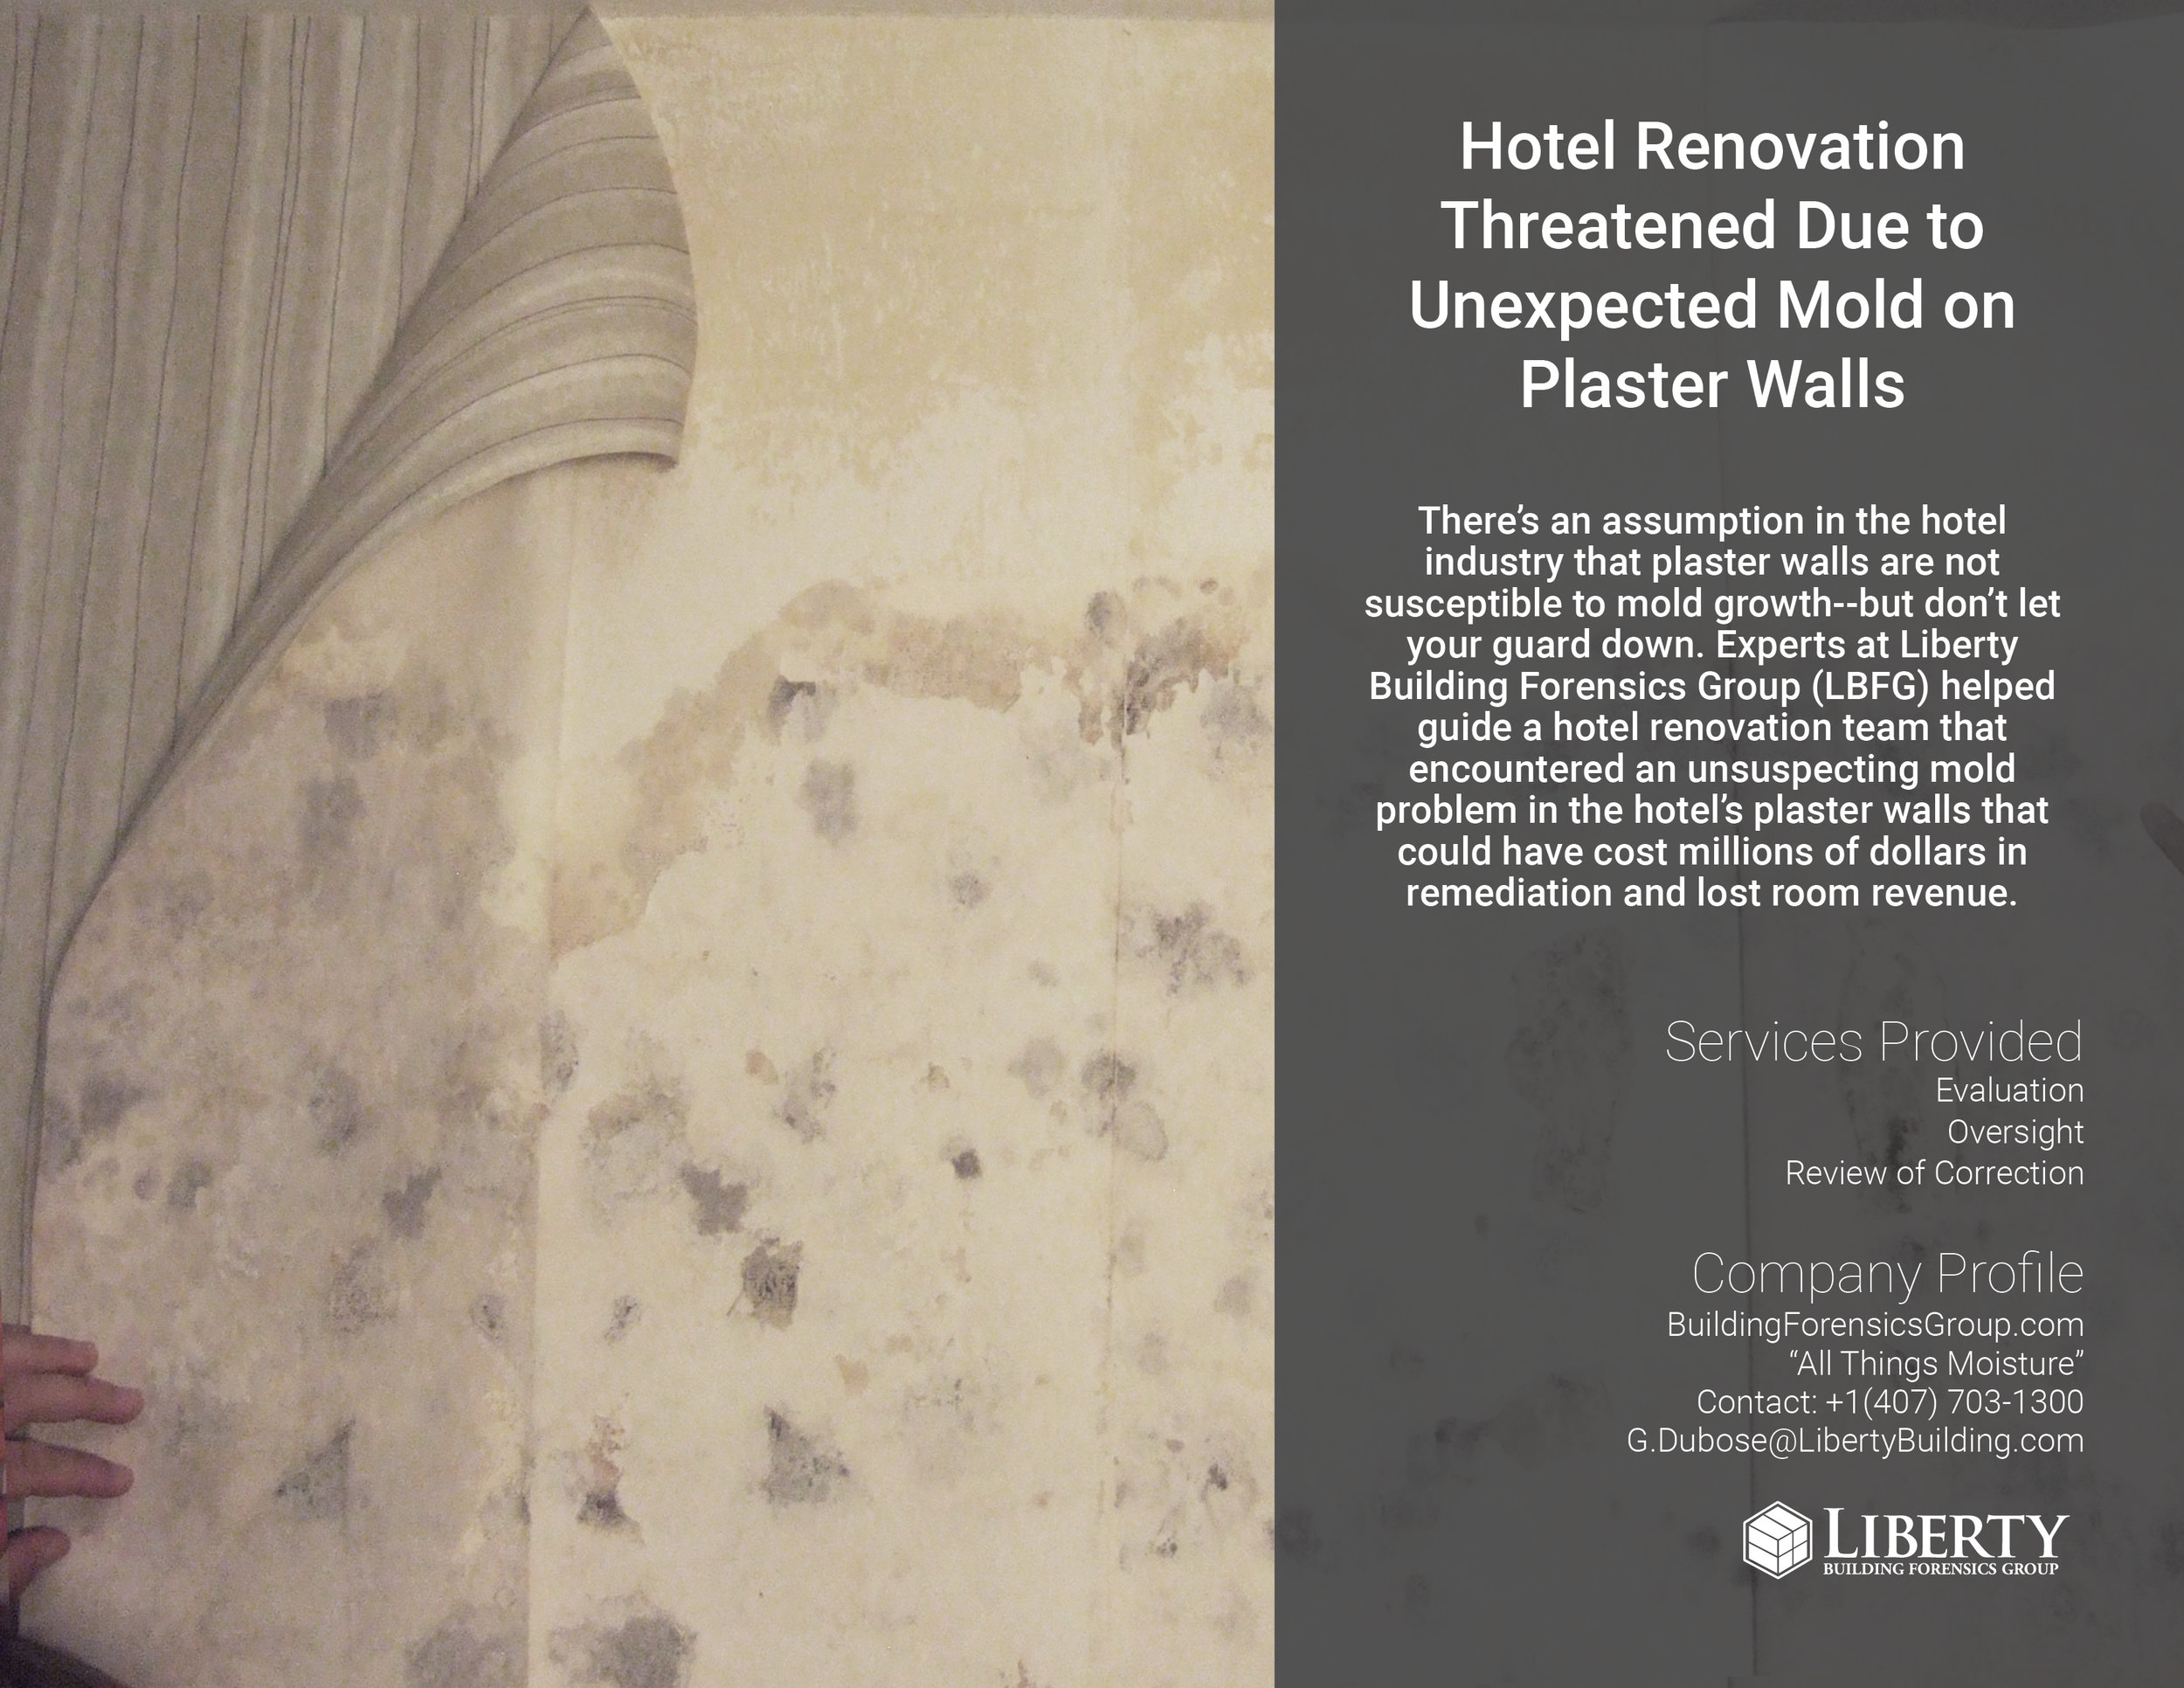 Plaster Building Hotel Renovation Threatened Due To Unexpected Mold On Plaster